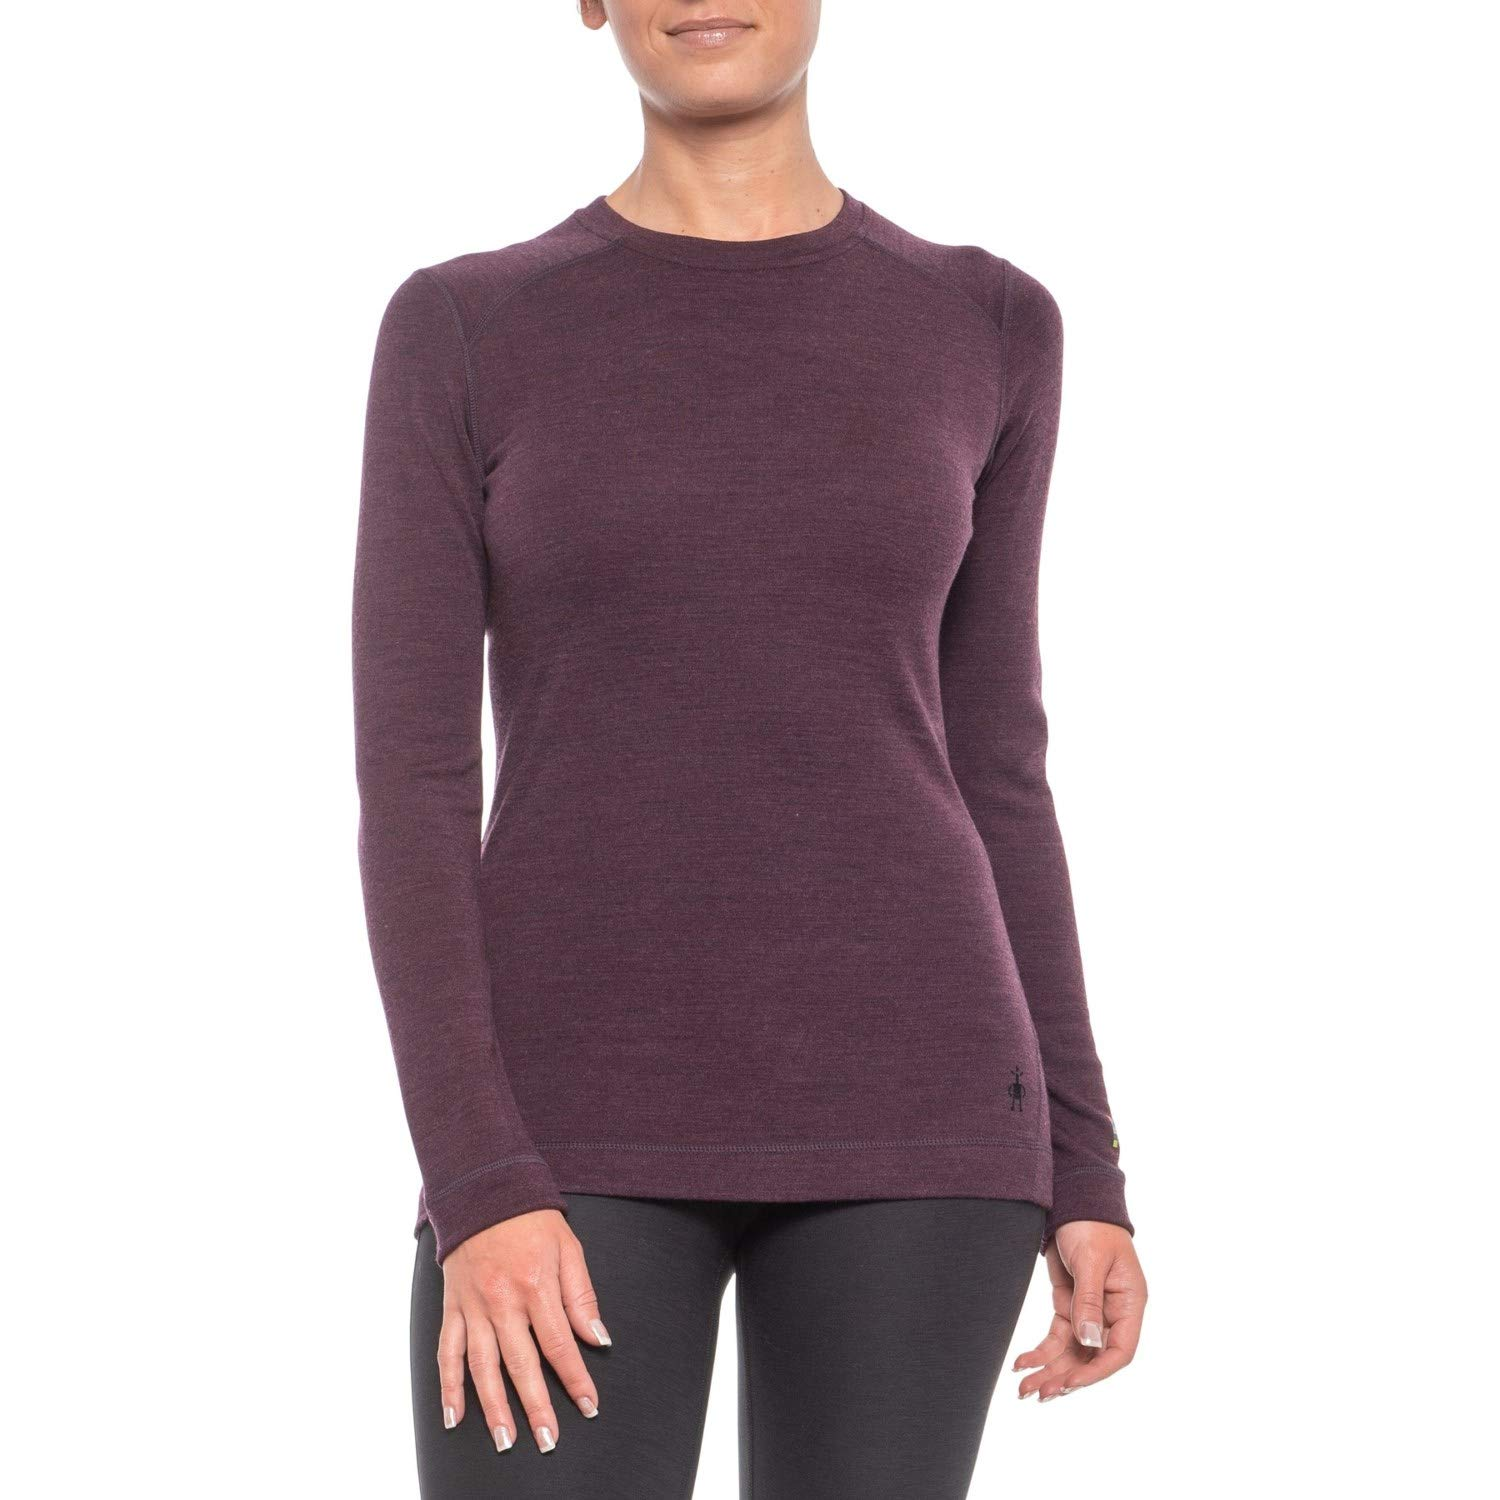 Smartwool Women's Base Layer Crew - Merino Wool 250 Long Sleeve Crew Neck Top (Medium, Bordeaux)